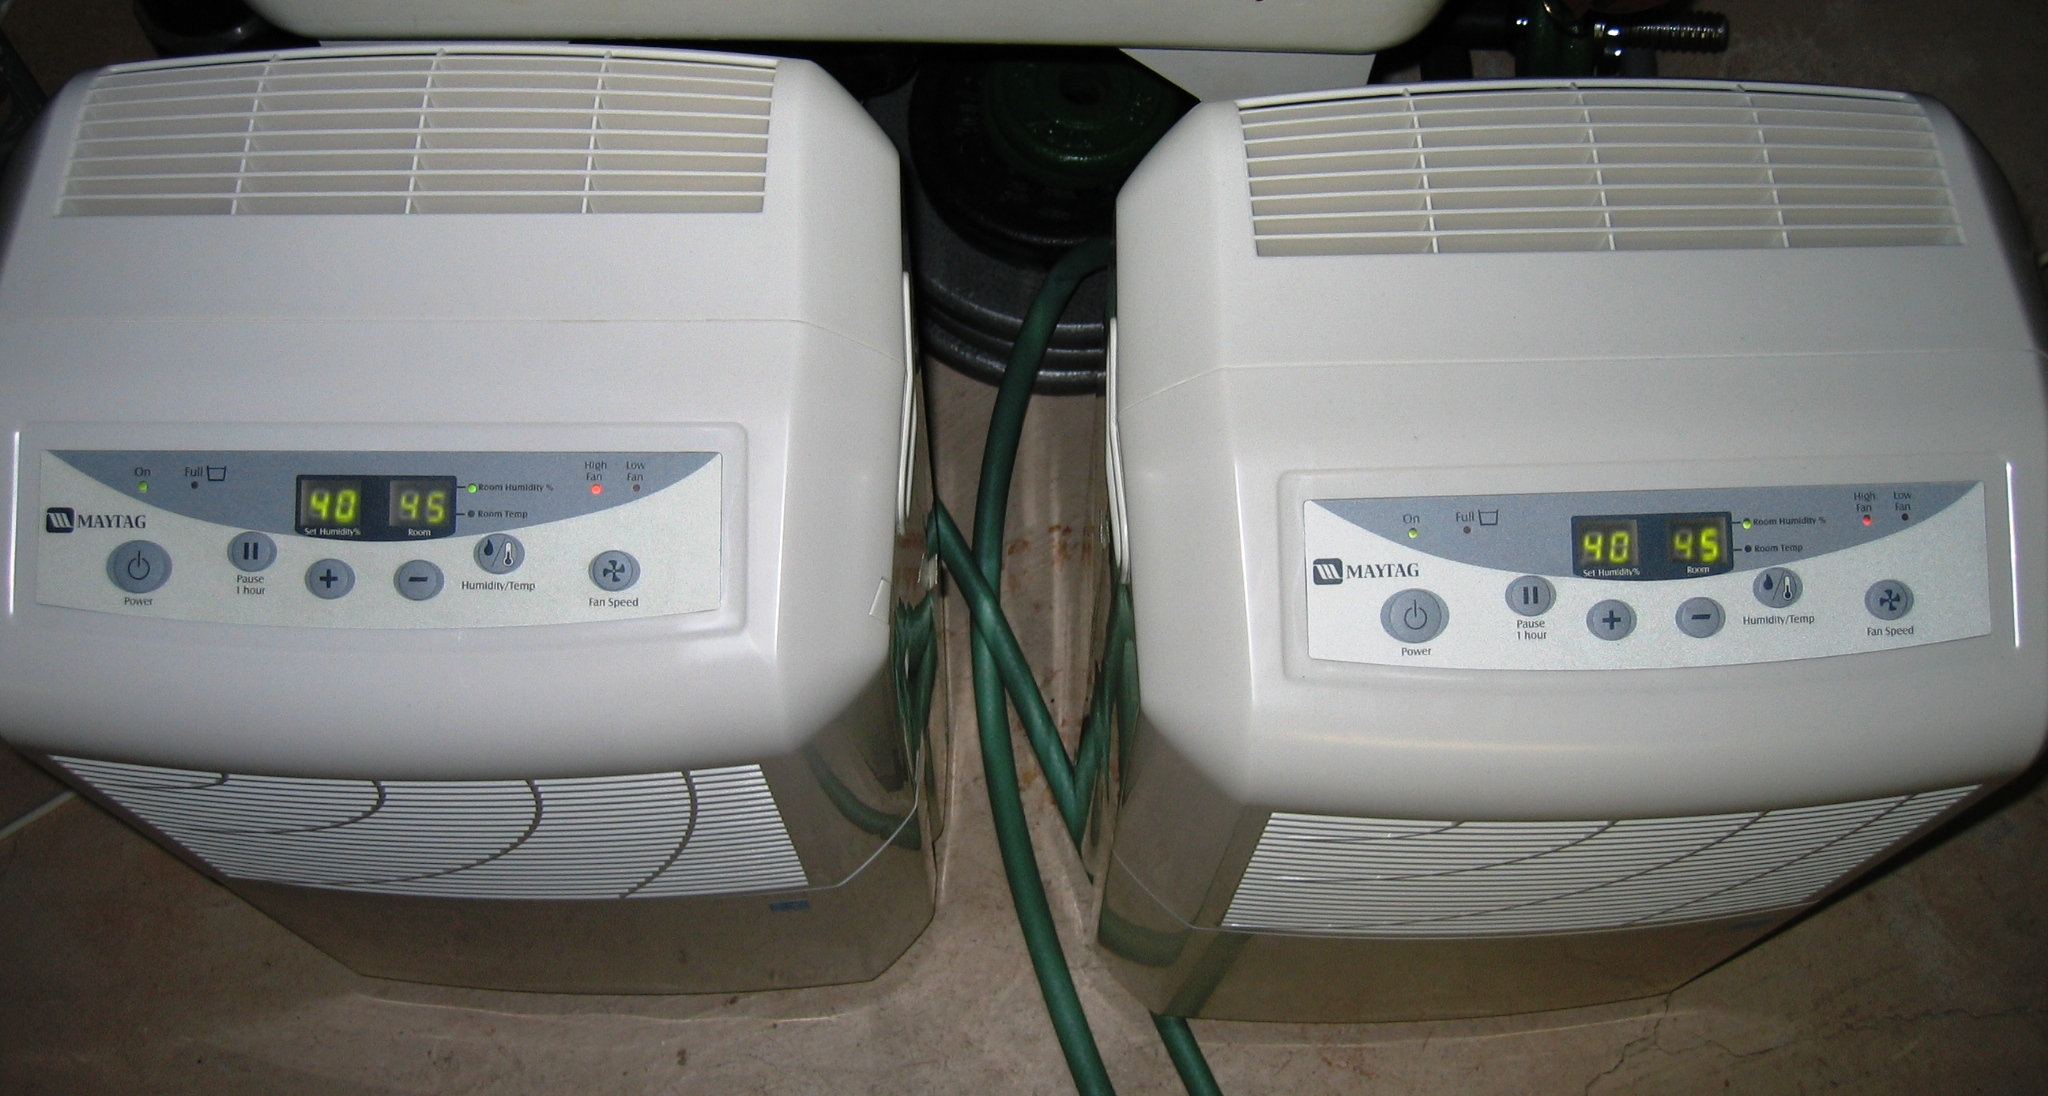 humidifier or dehumidifier for basement